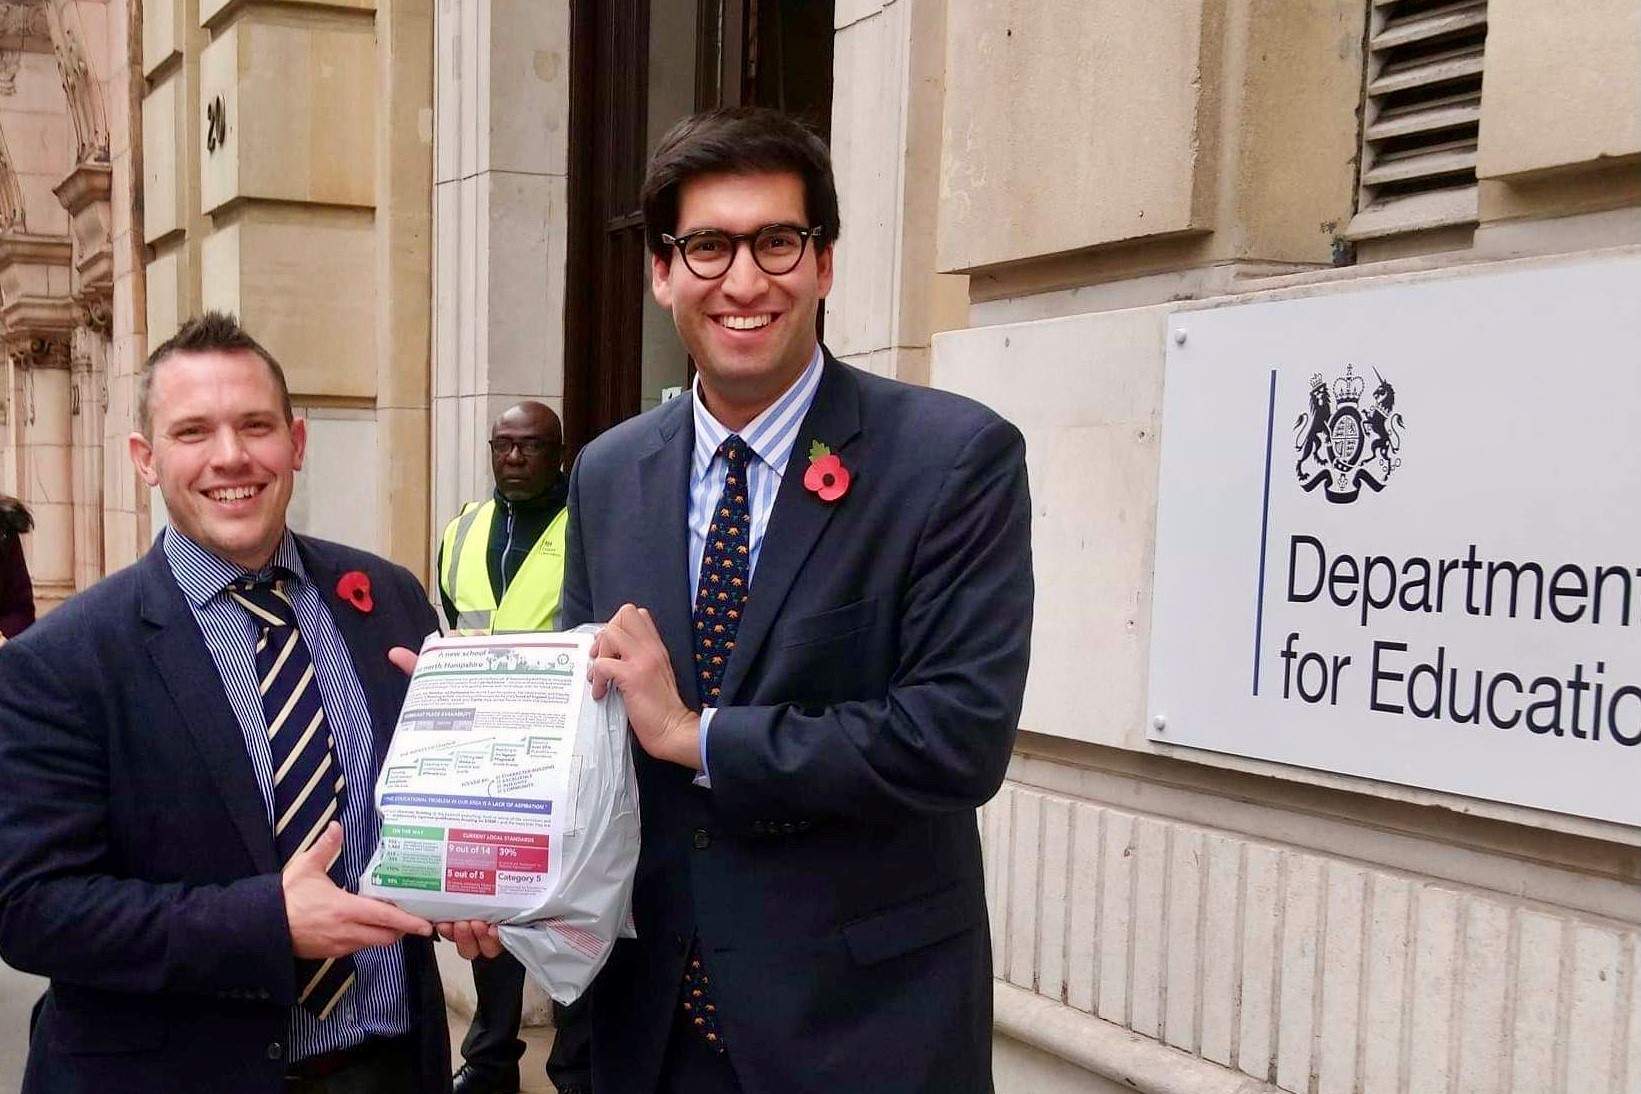 Ranil Jayawardena MP (right) and Revd Dr Chris Evans handing in their application at the Department for Education